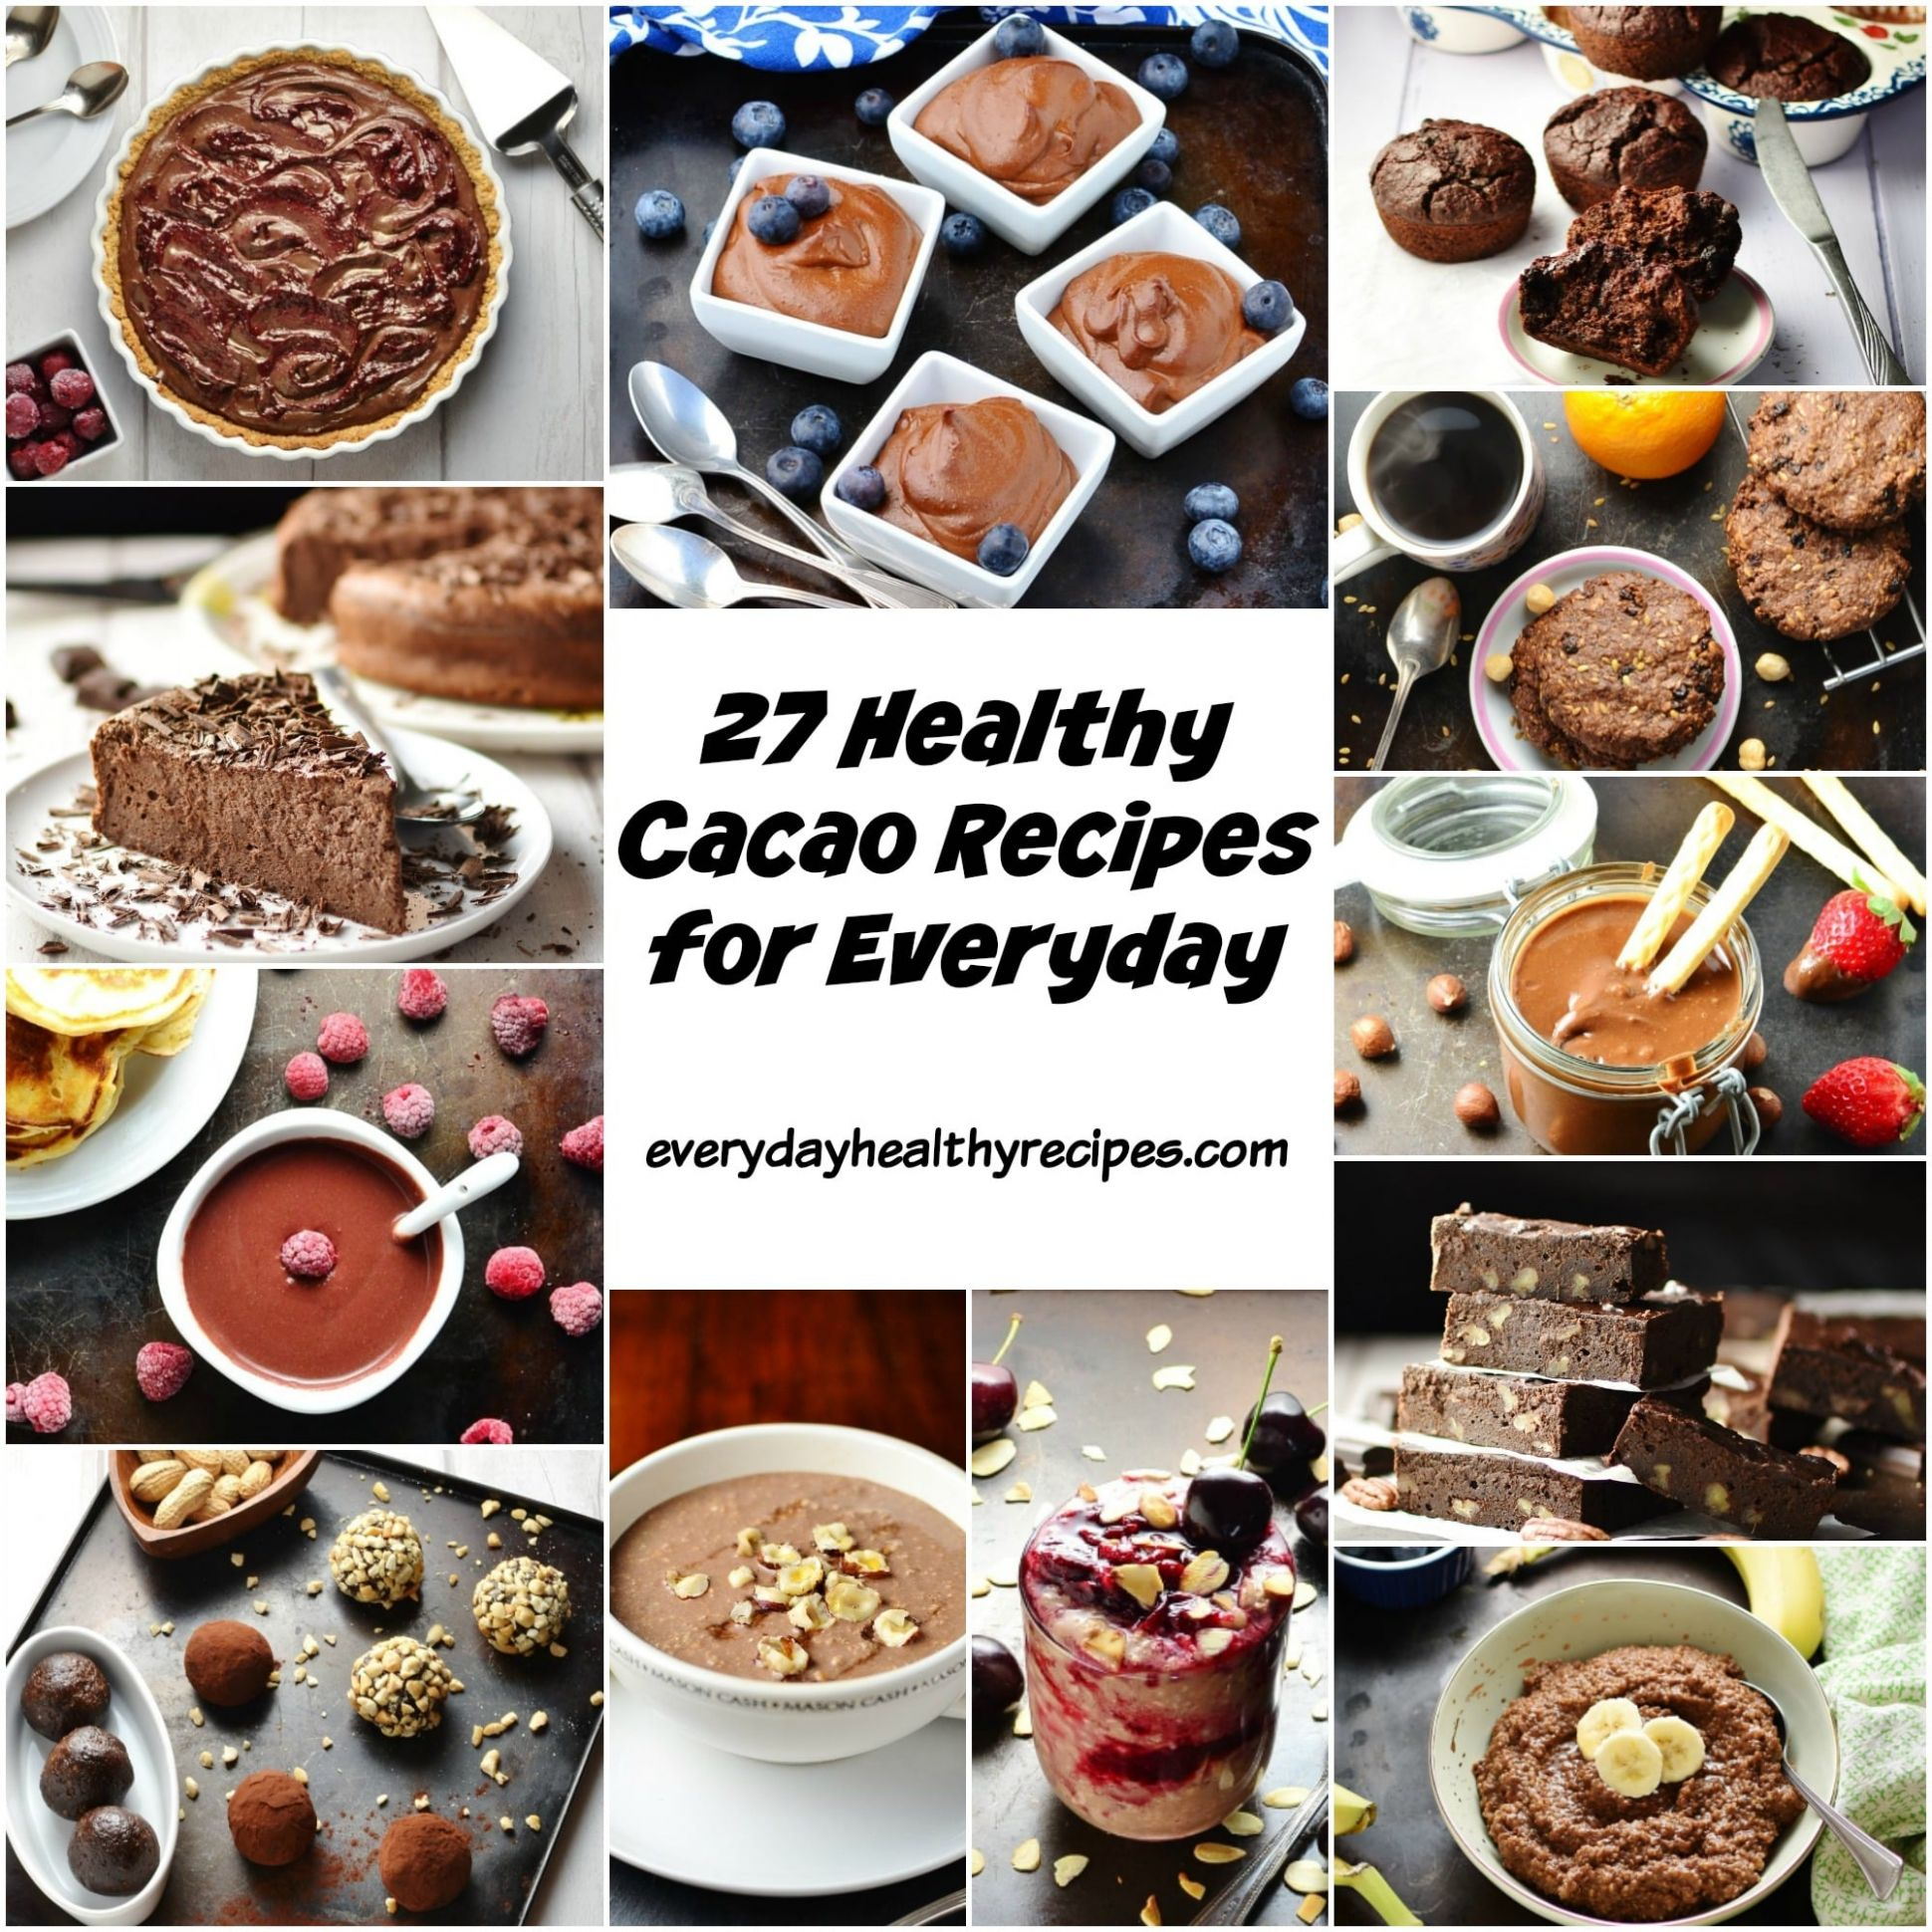 9 Healthy Cacao Recipes for Everyday - Everyday Healthy Recipes - Healthy Recipes Everyday